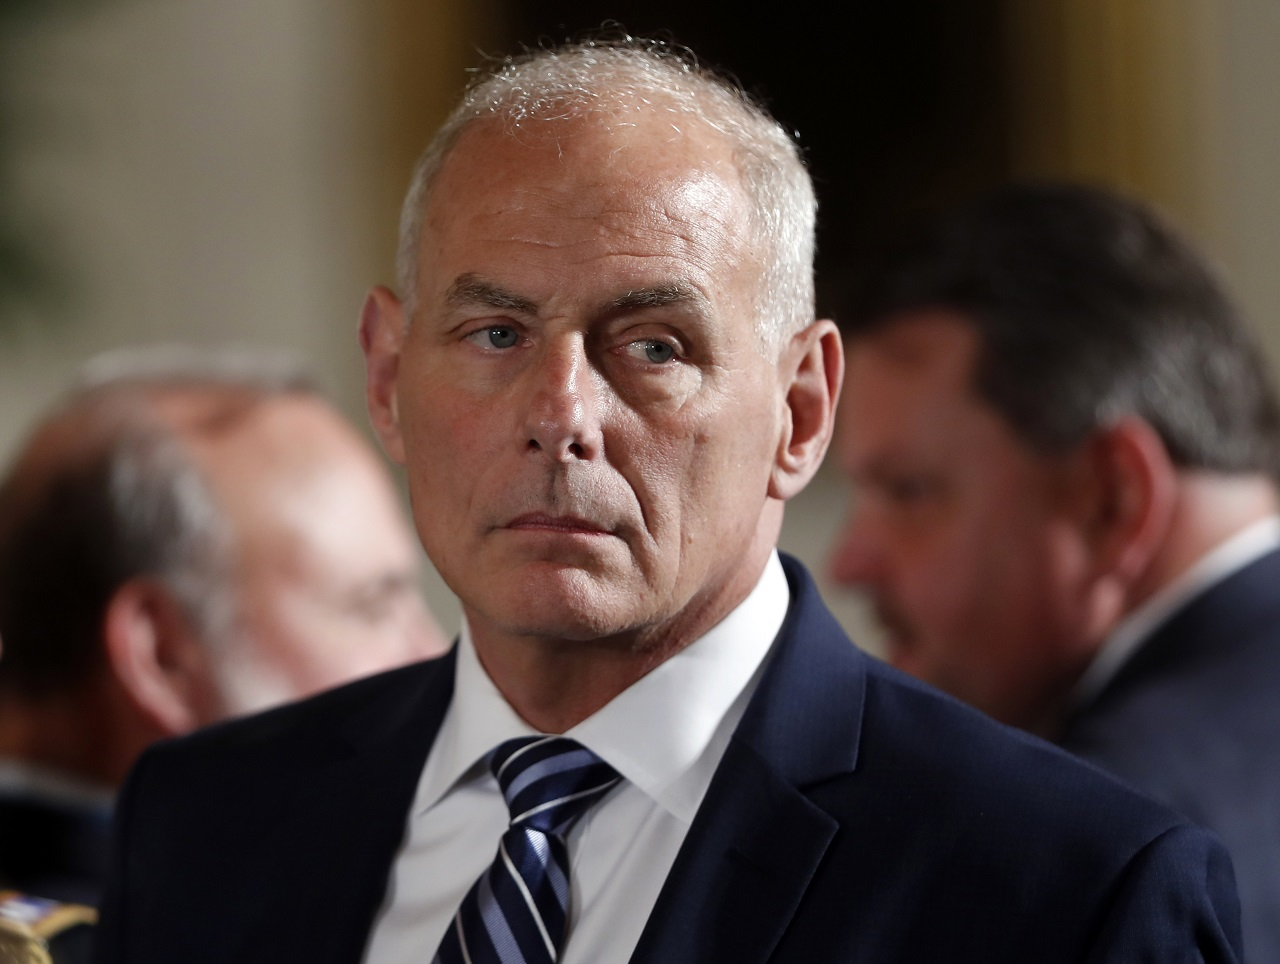 White House Chief of Staff John Kelly appears at event where President Donald Trump was to bestow the Medal of Honor to retired Army medic James McCloughan during a ceremony in the East Room of the White House in Washington, Monday, July 31, 2017.